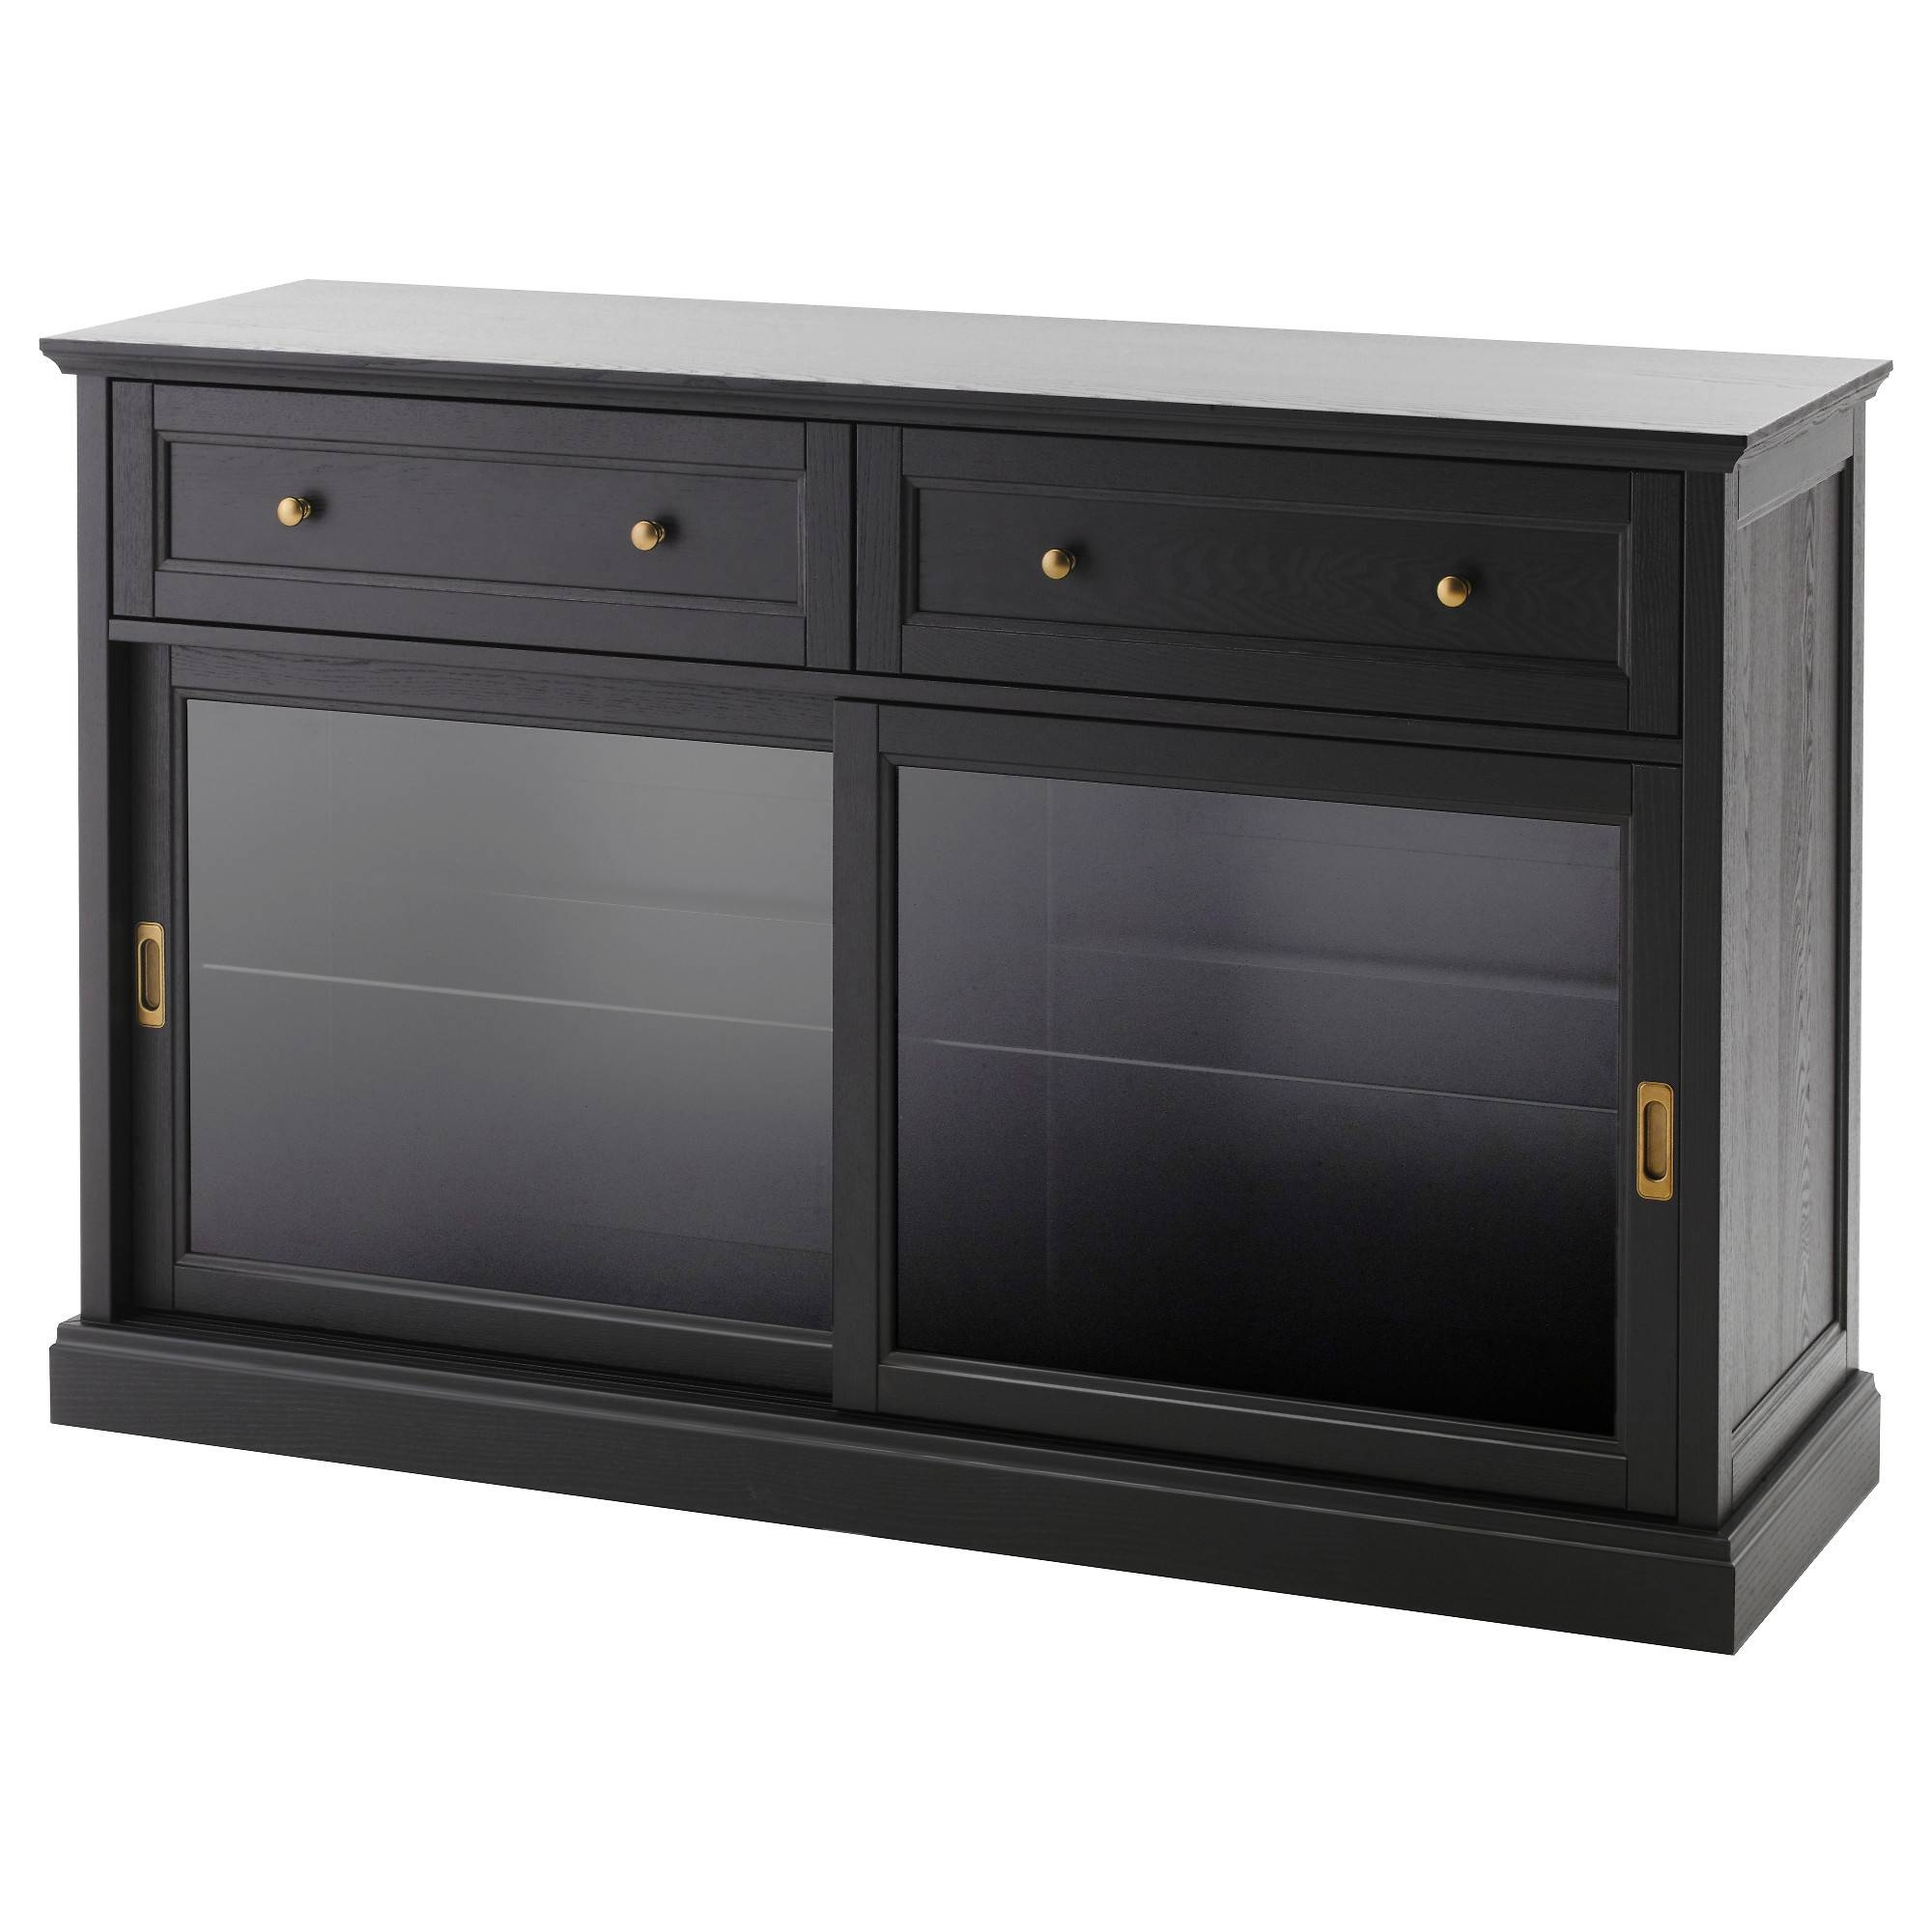 Cabinets & Console Tables - Ikea pertaining to Shallow Sideboard Cabinets (Image 7 of 30)